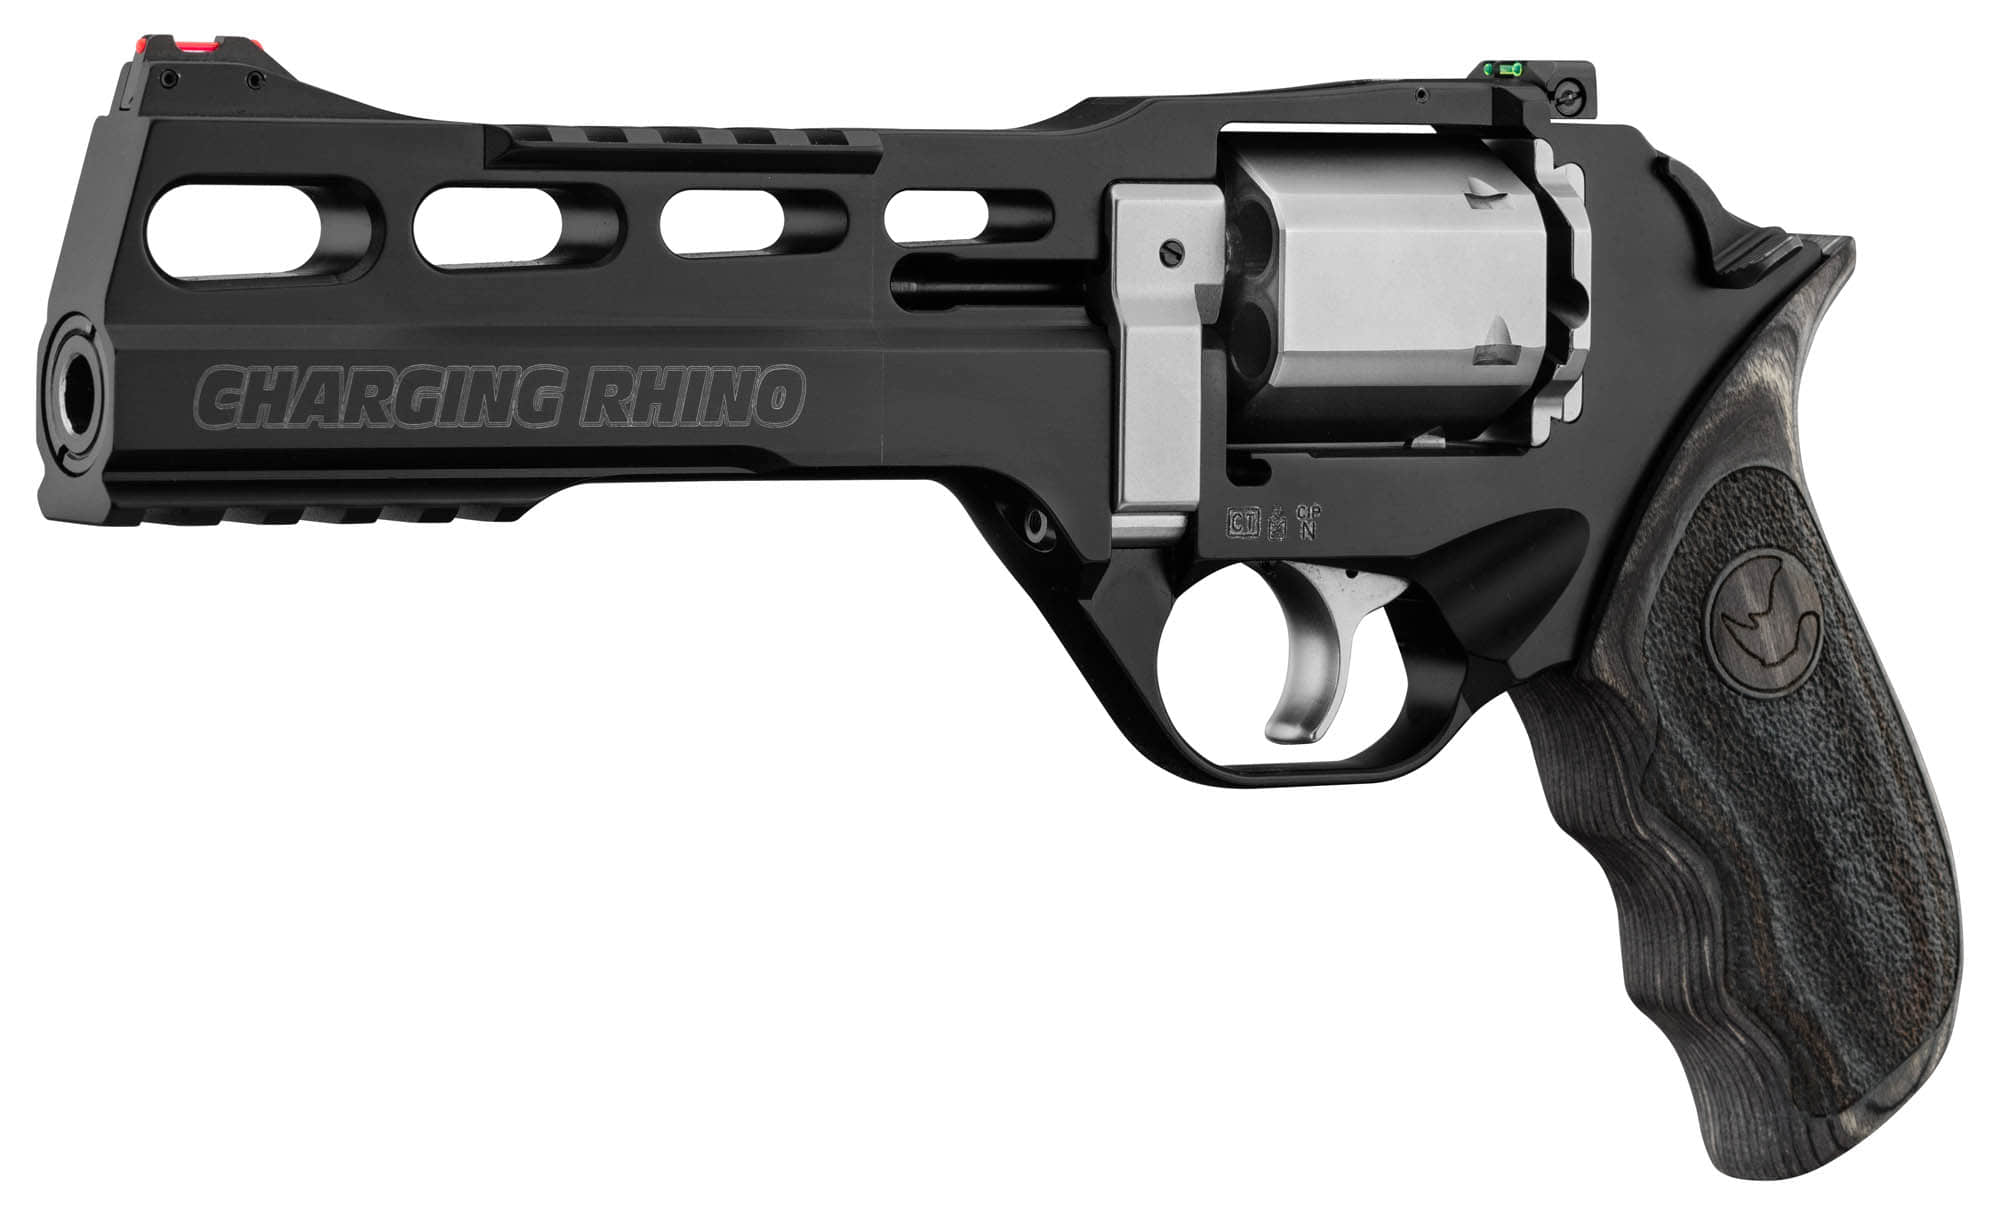 ADP763-1-Revolver Chiappa 60 DS 6'' Charging Rhino Edition limitée - ADP763